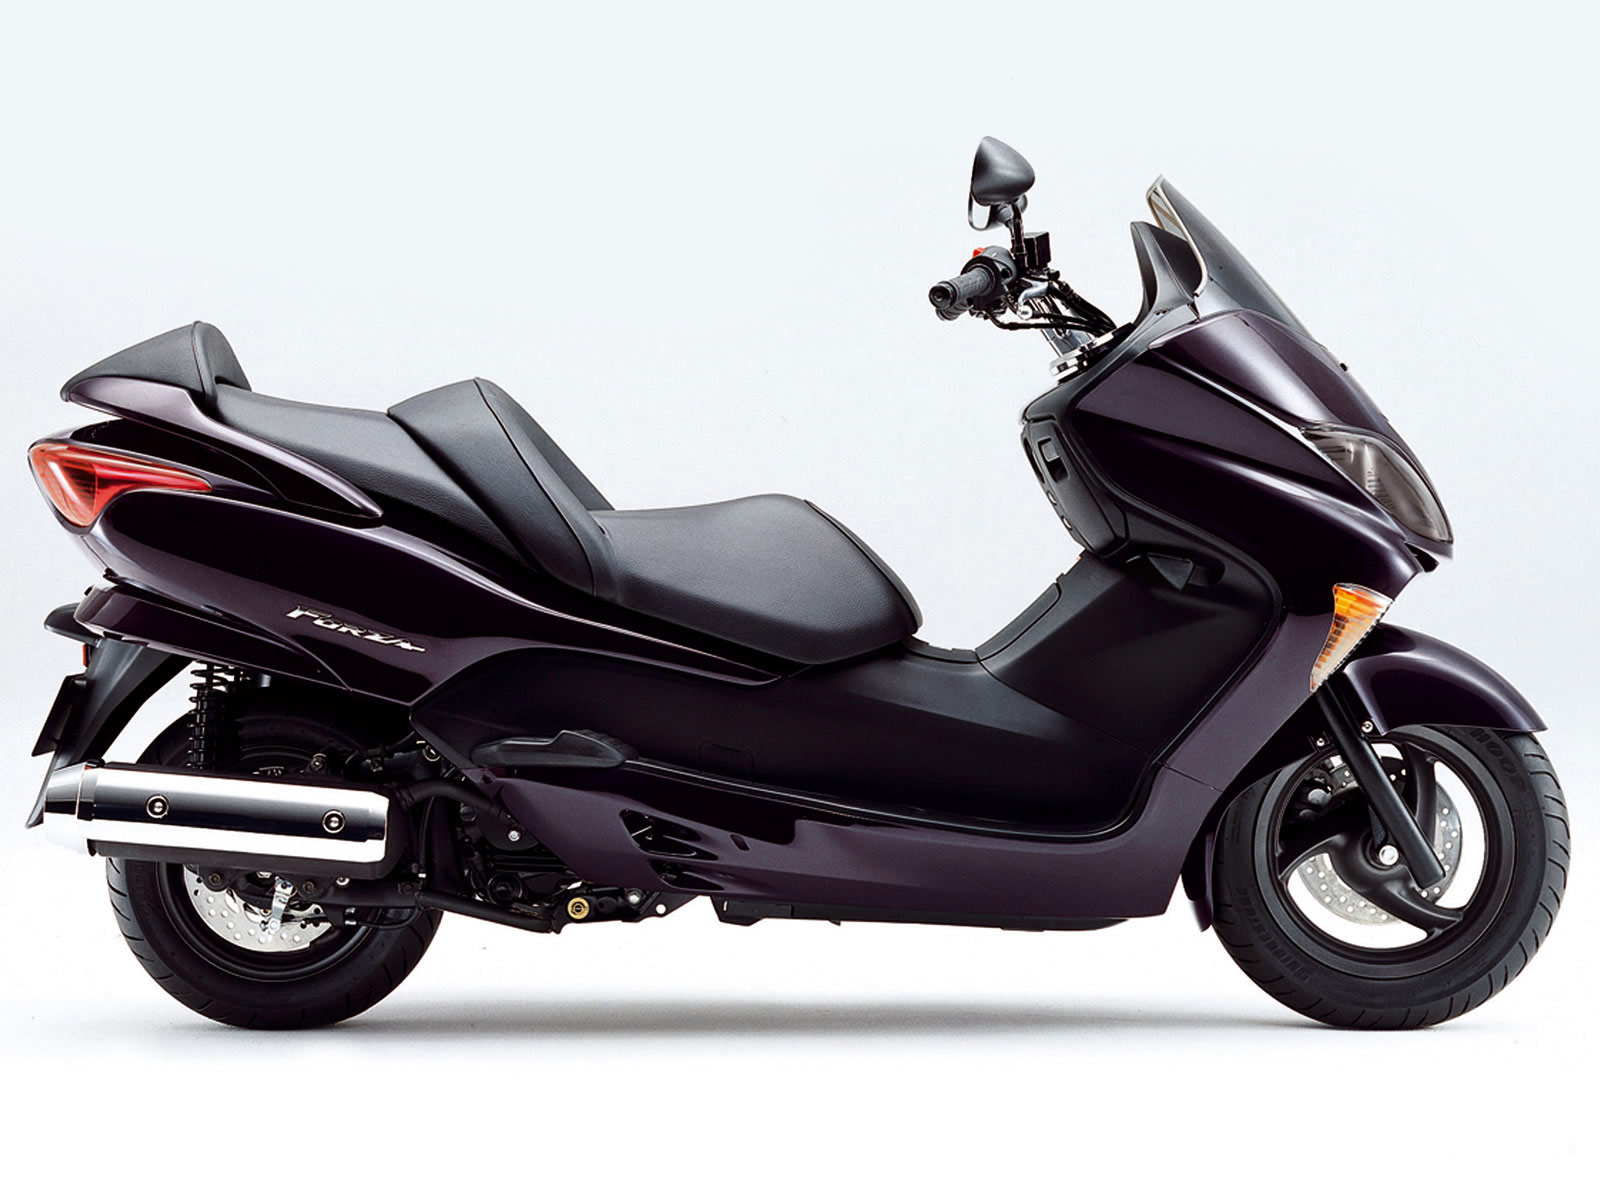 2005 honda forza accident lawyers scooter pictures. Black Bedroom Furniture Sets. Home Design Ideas